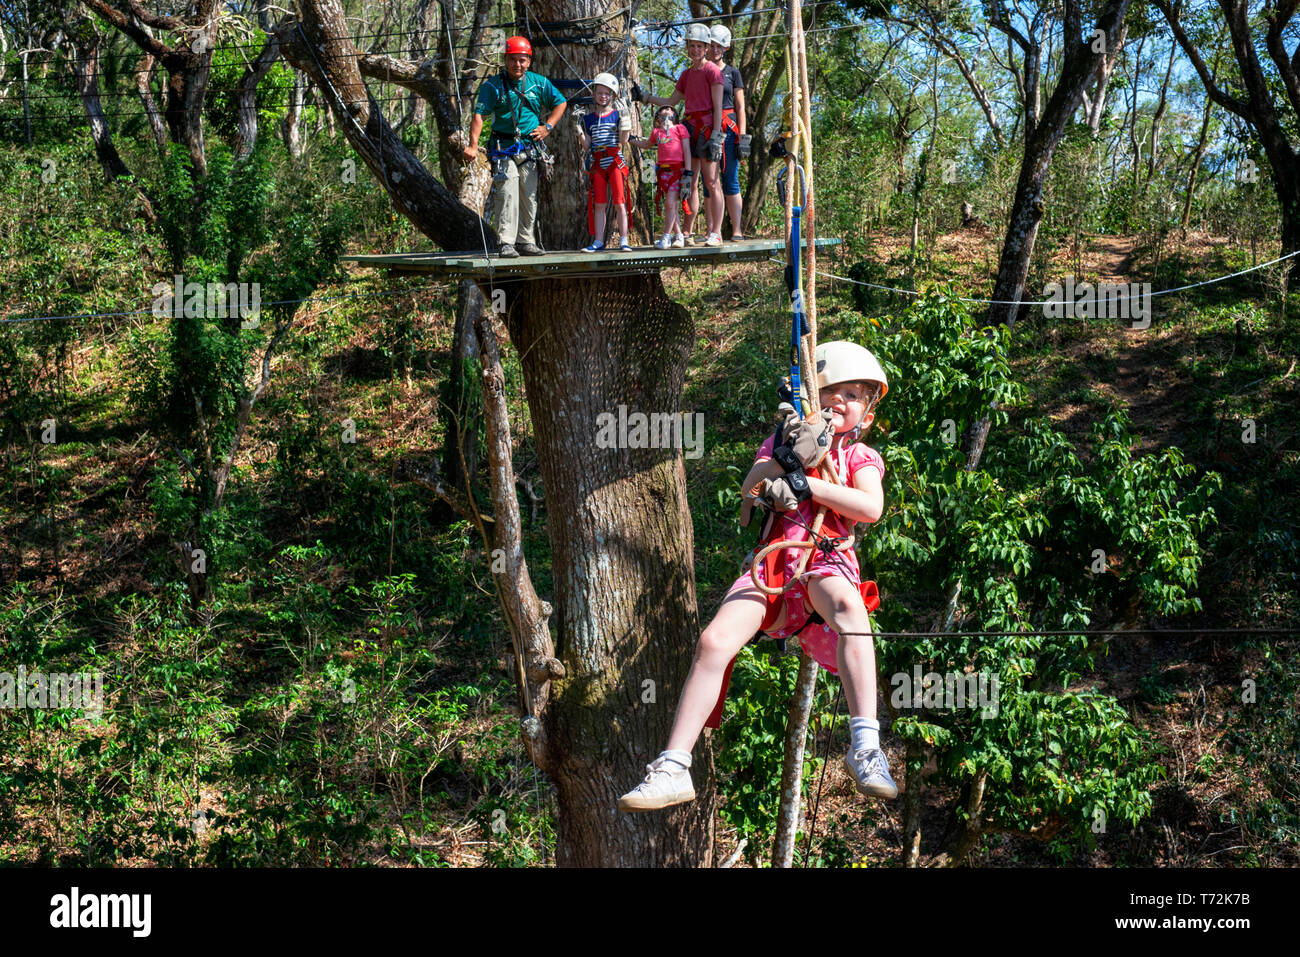 Young girl in a Canopy Adventure Café Las Flores Nicaragua Central America. Zip line across the treetops using the most advanced high angle equipment  - Stock Image